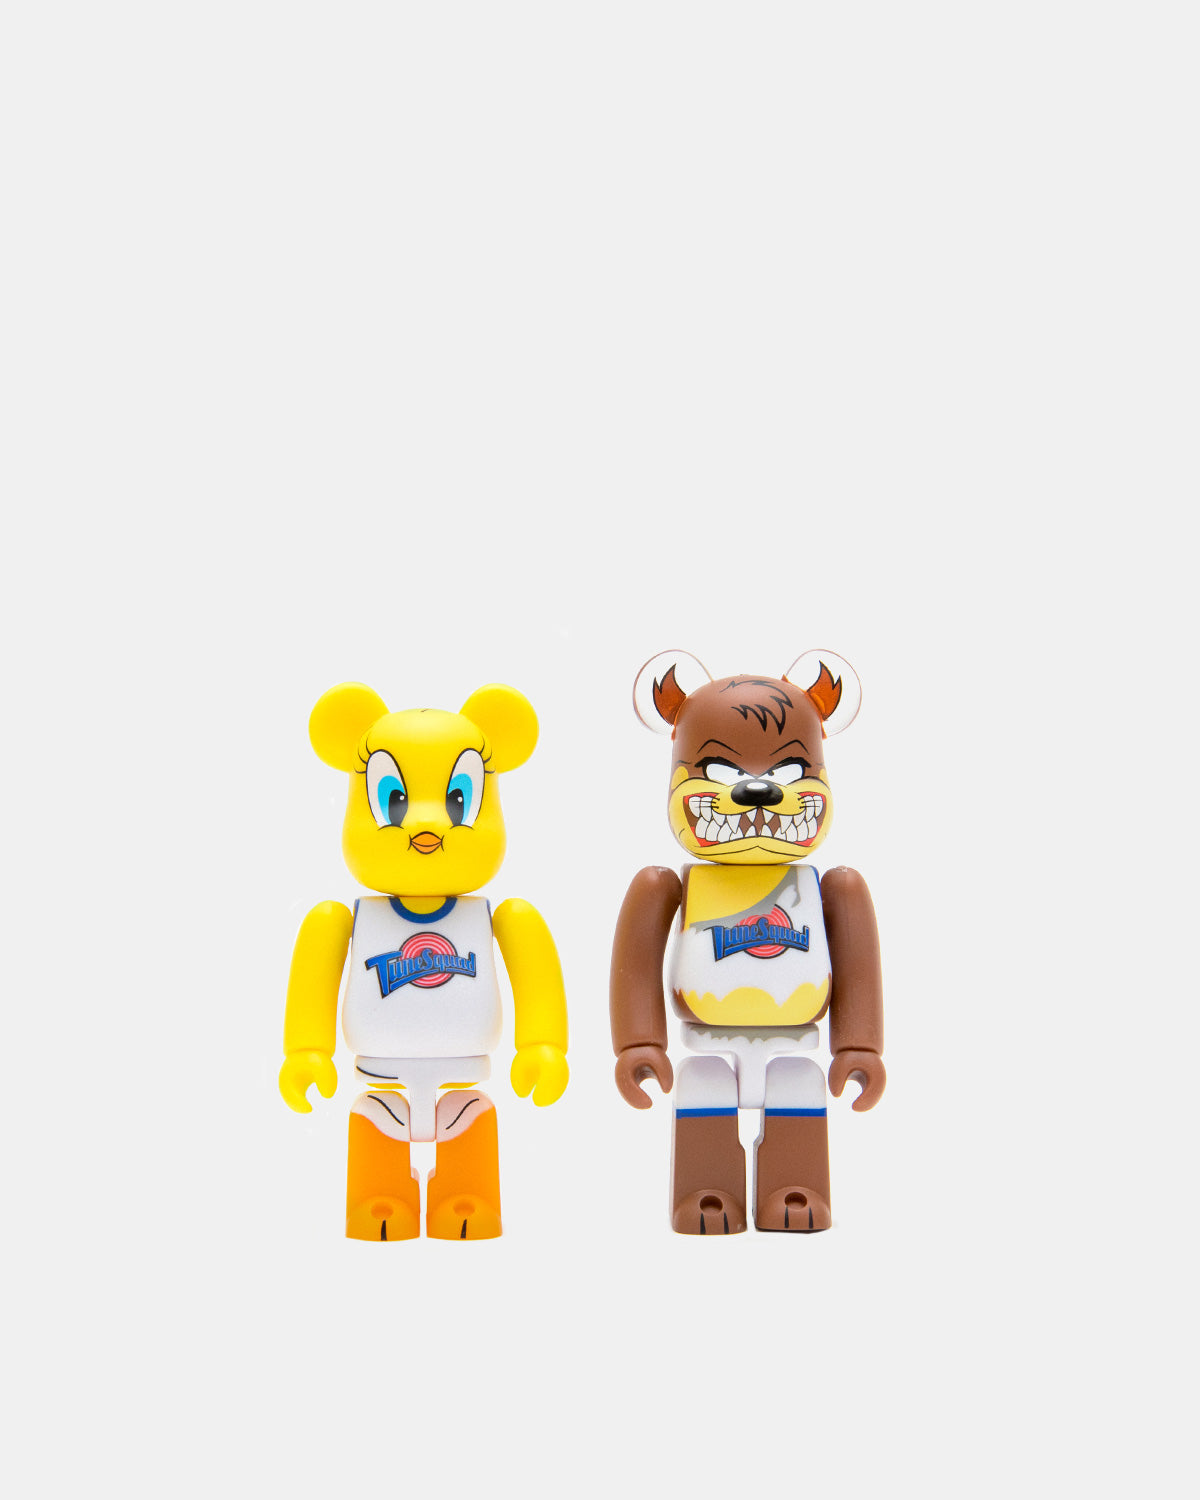 Medicom Toy - Space Jam Tweety Bird and Tasmanian Devil 100% 2 Pack Be@rbrick (Yellow | Brown)